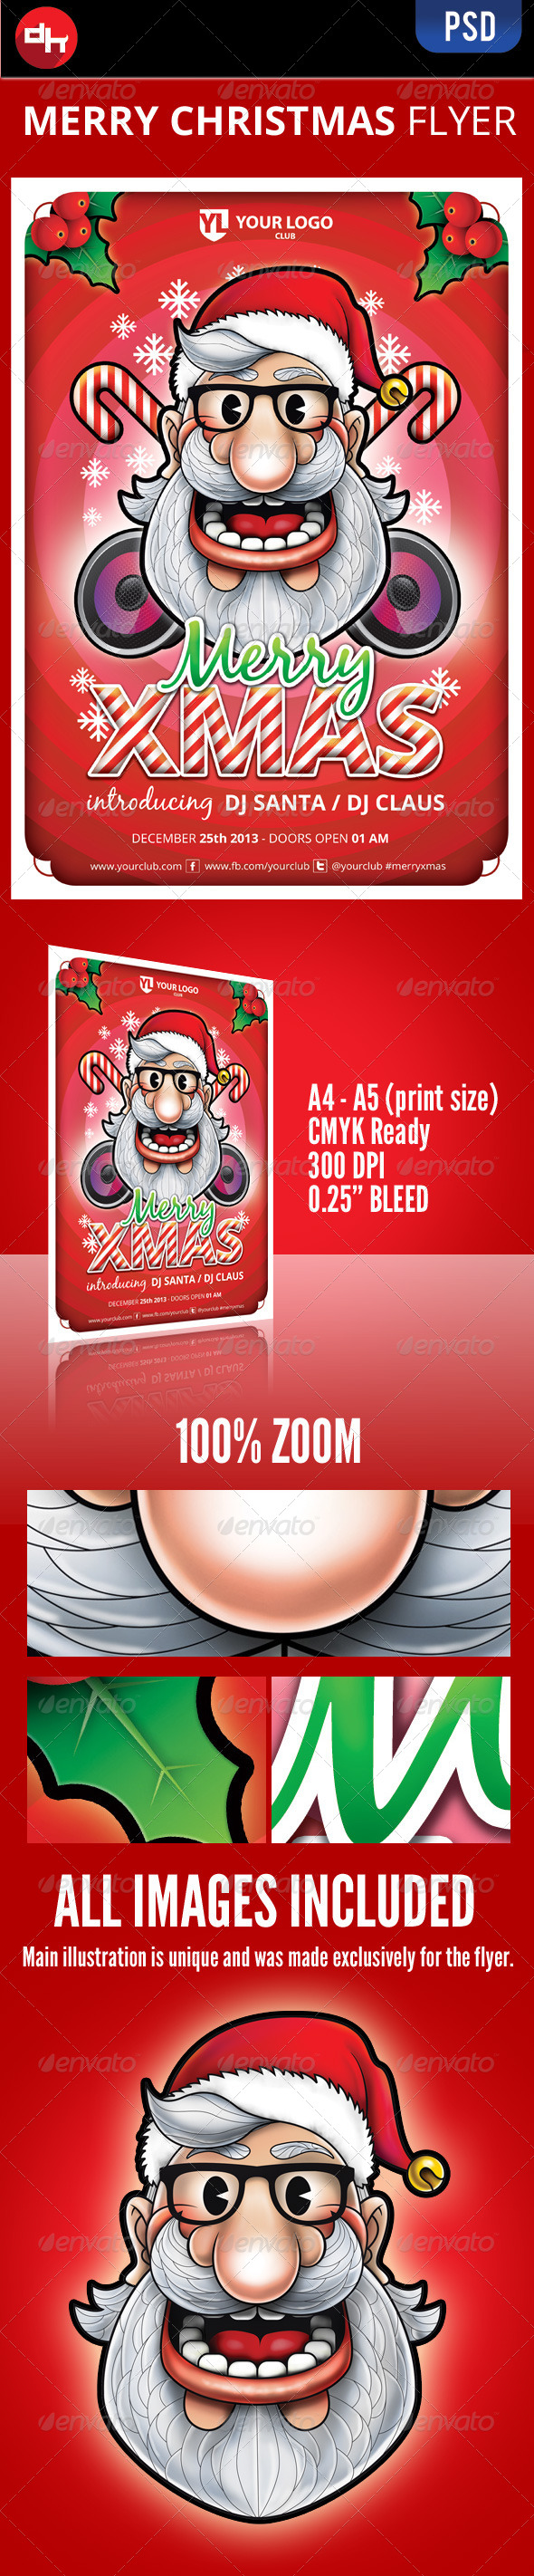 GraphicRiver Merry Xmas Flyer 6315449